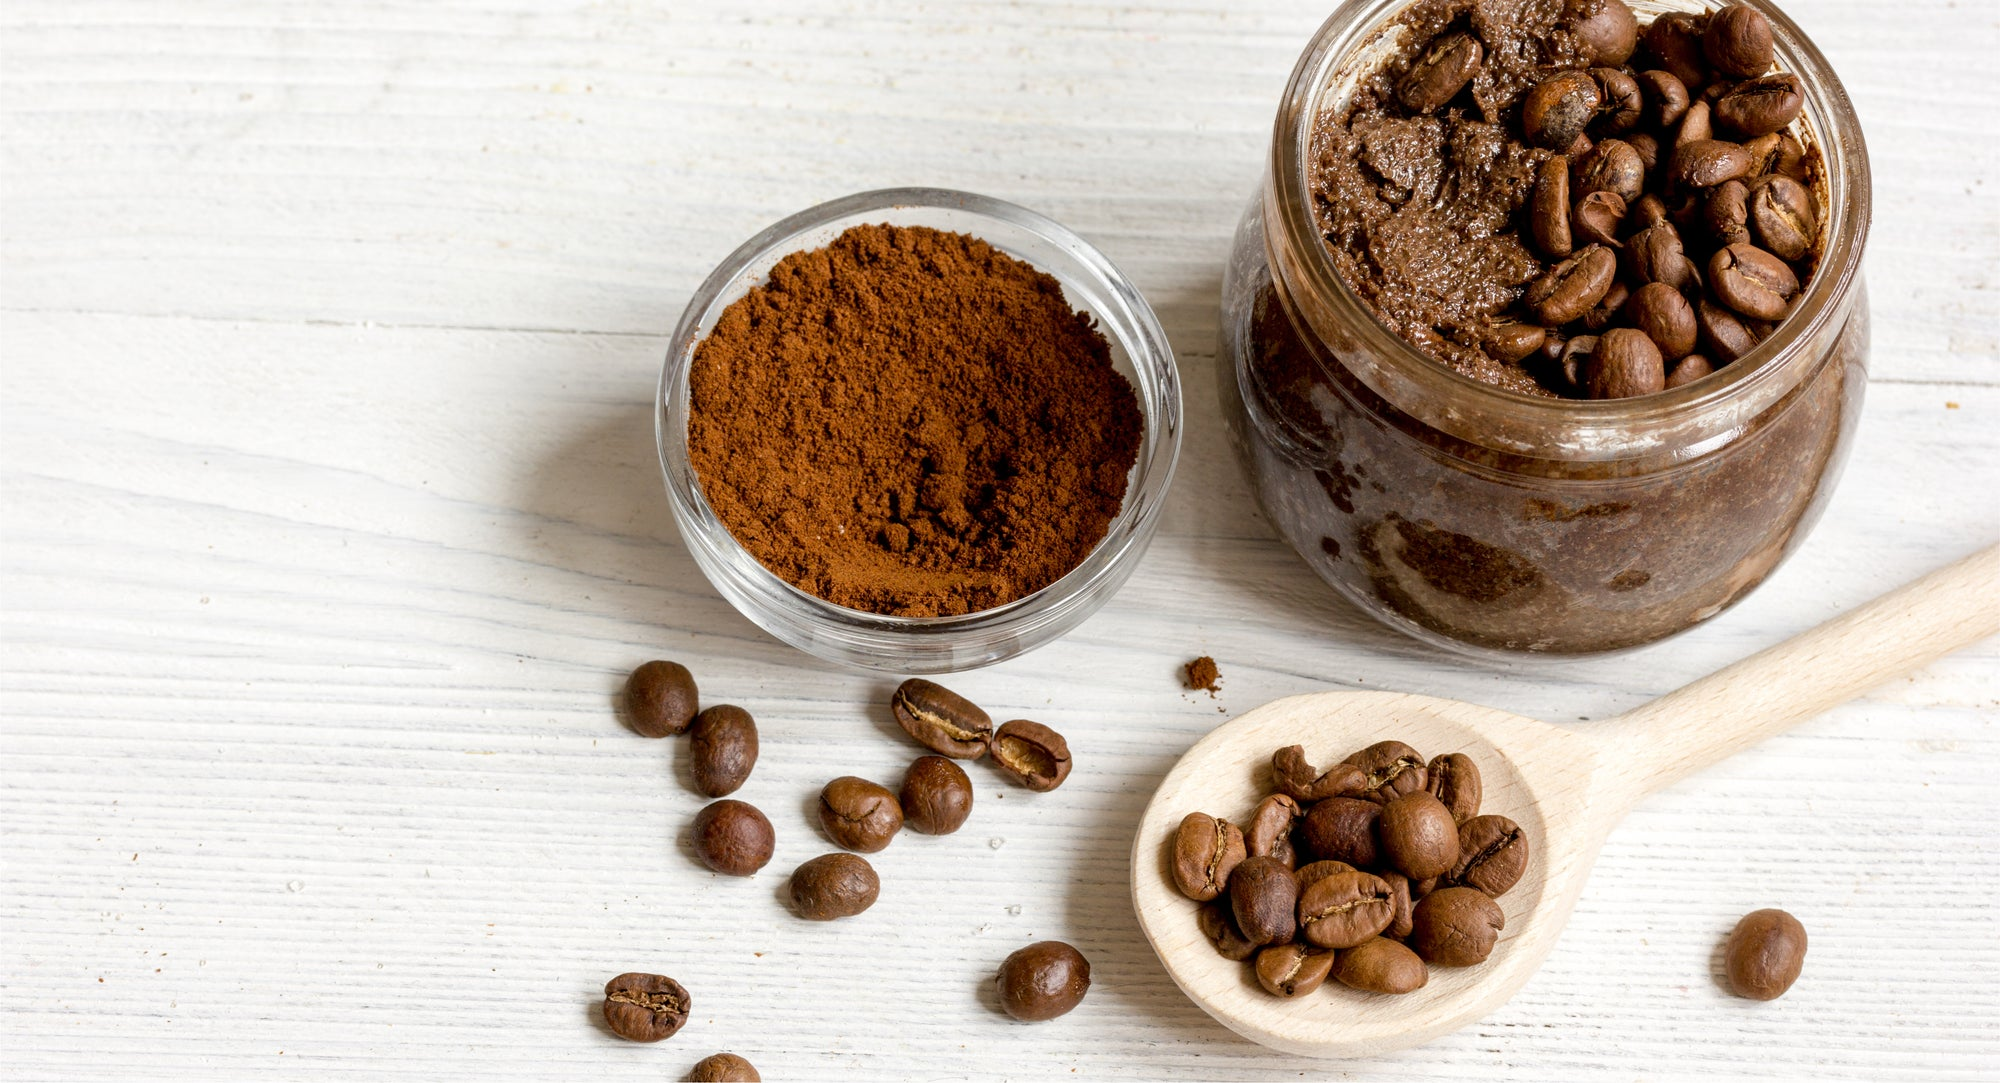 Caffeine is rich in antioxidants which can reduce the sign of aging when used in skincare products.